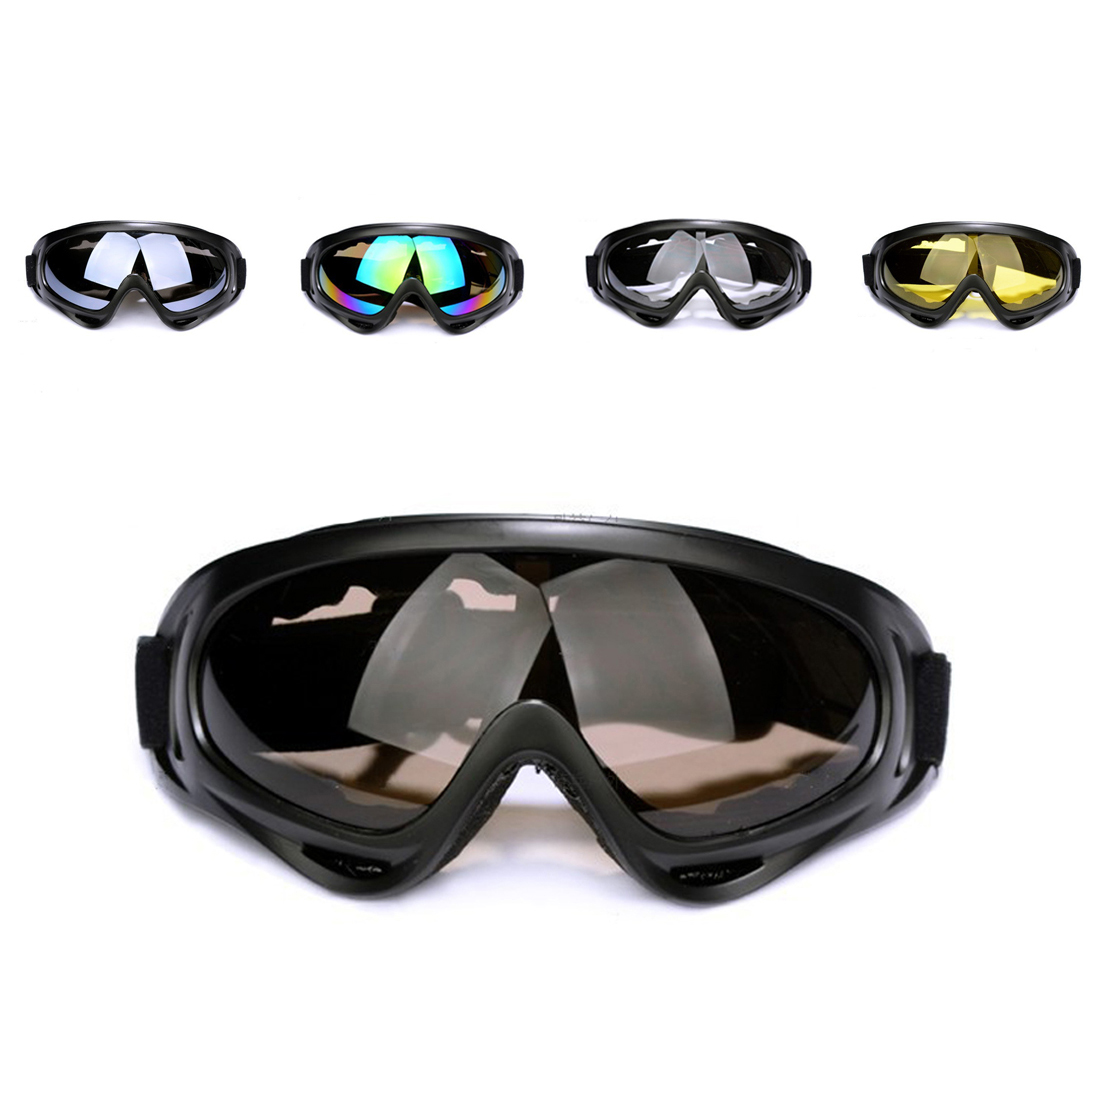 Classic Style Tactical Soft Bullet Dart Explosion-proof Shock-resistant Protective Goggles For Nerf Outdoor Paintball Glasses